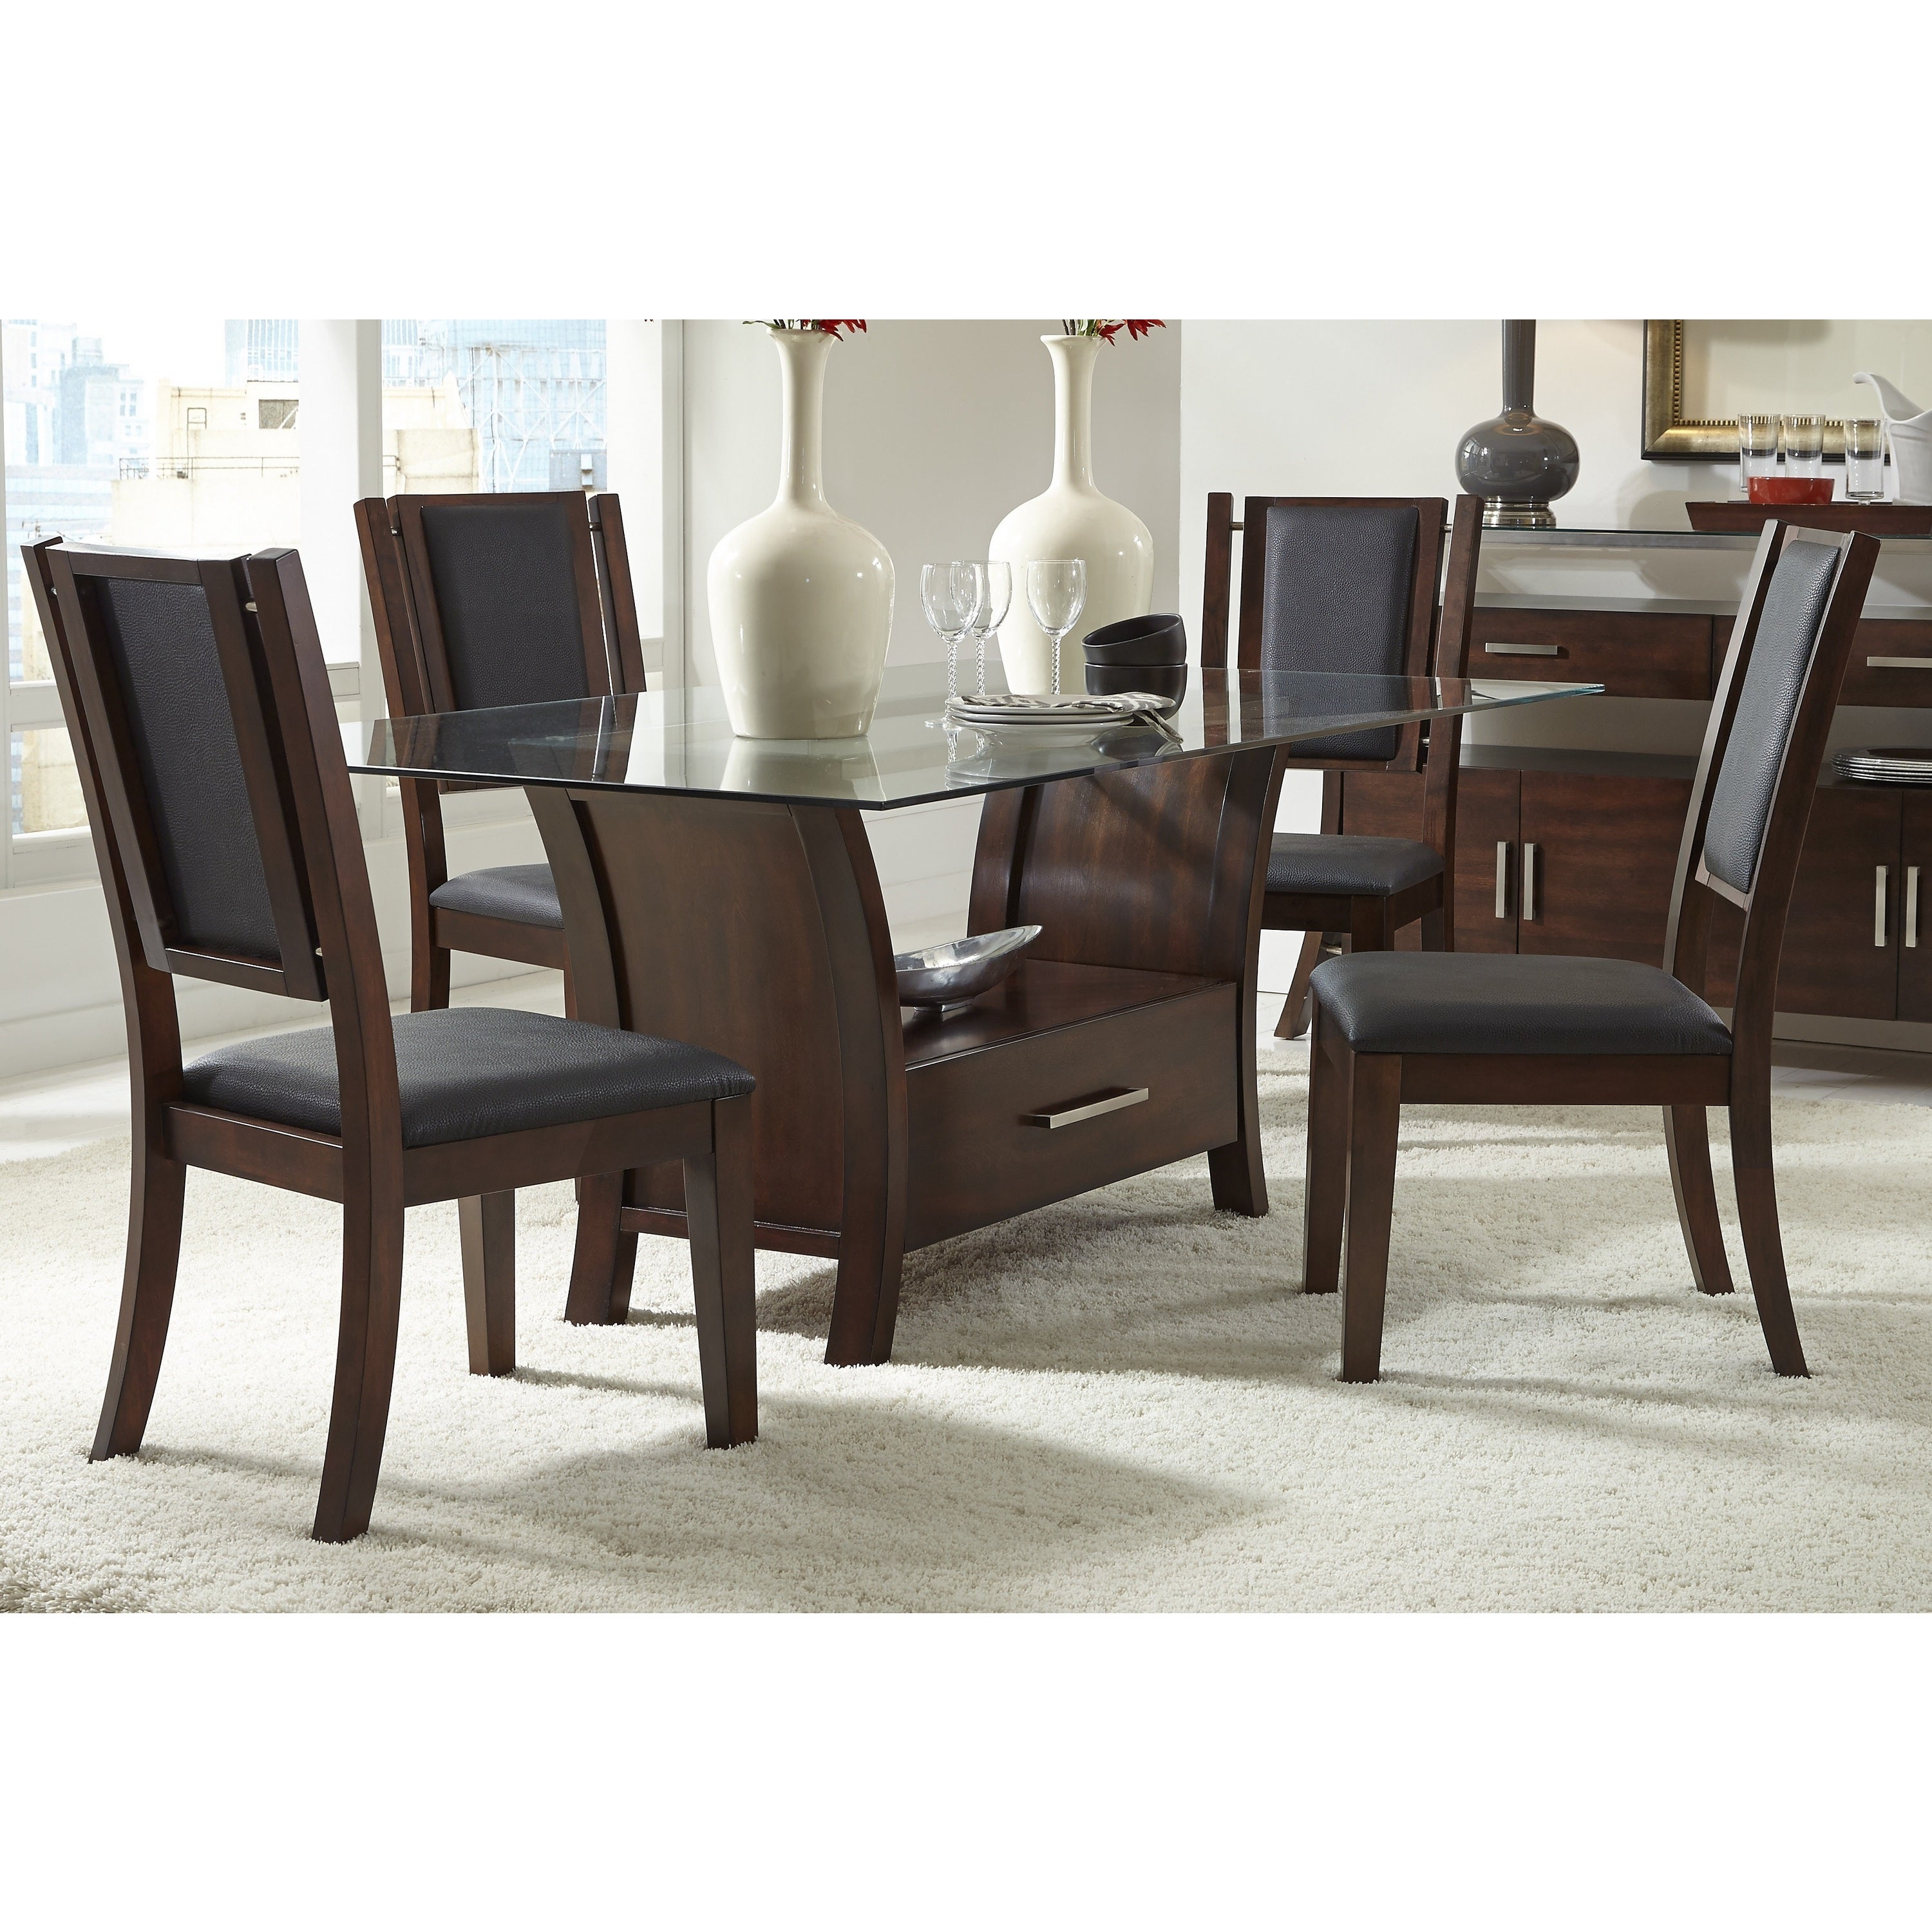 Avalon Dining Table Overstock 10222503